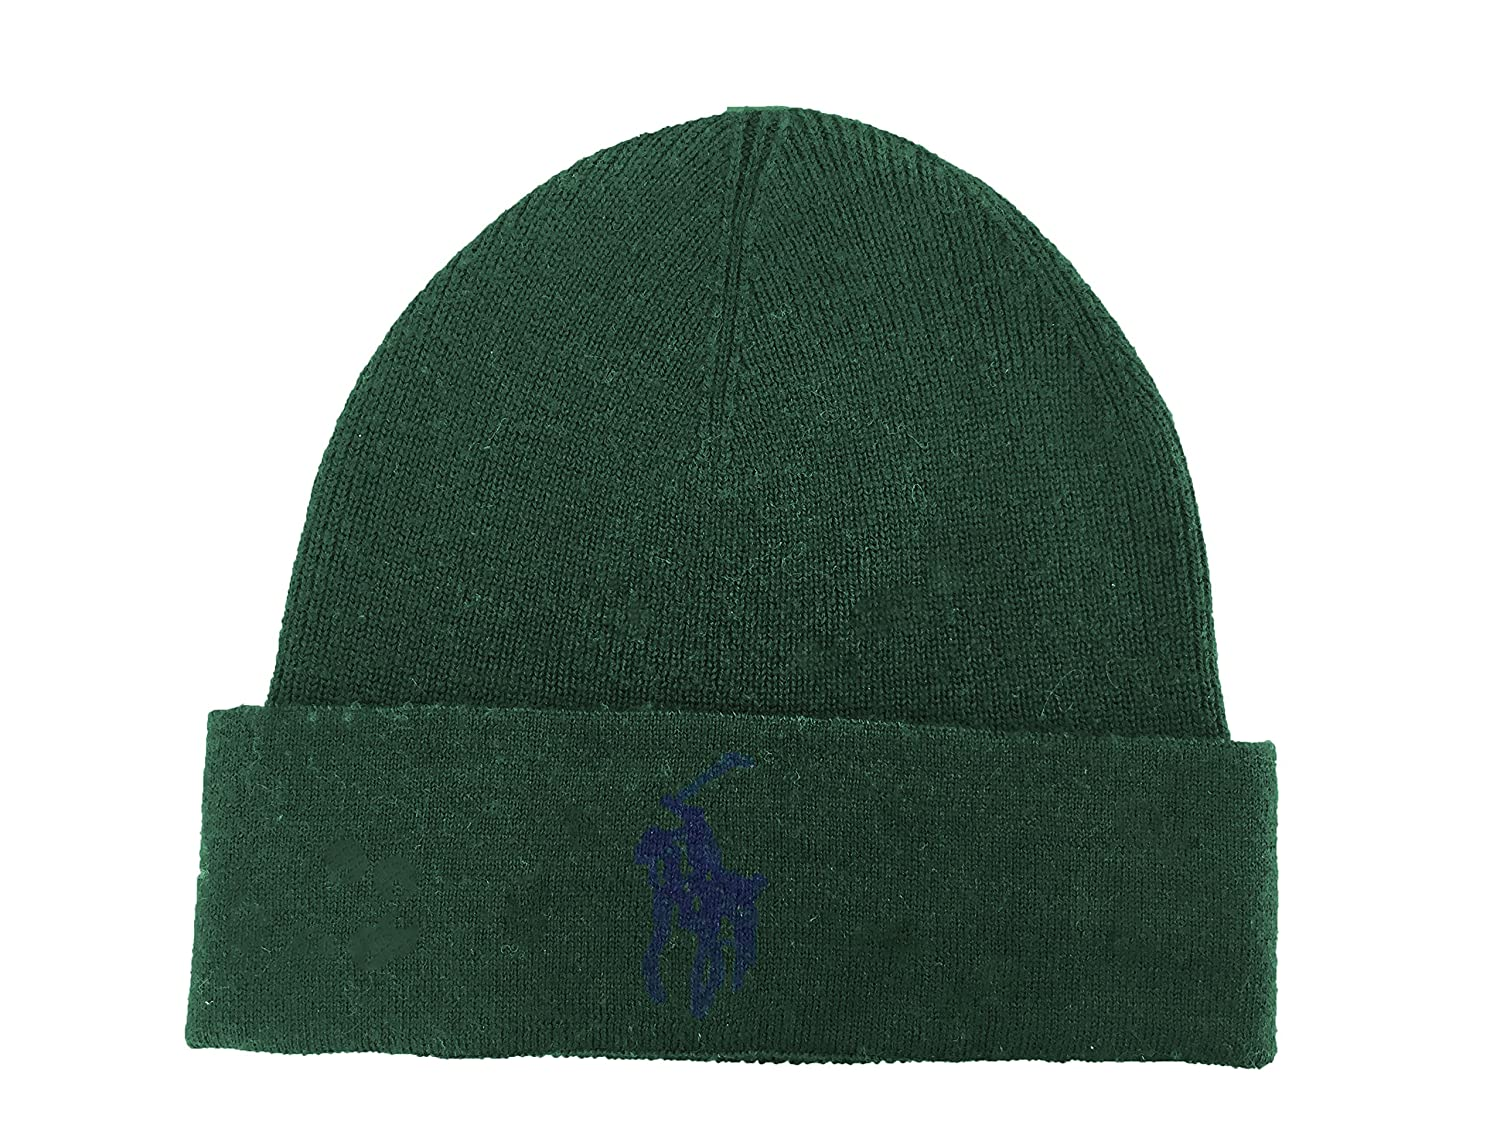 5abf170a931 Ralph Lauren Mens Polo Big Pony Skull Cap Beanie (Green) at Amazon Men s  Clothing store